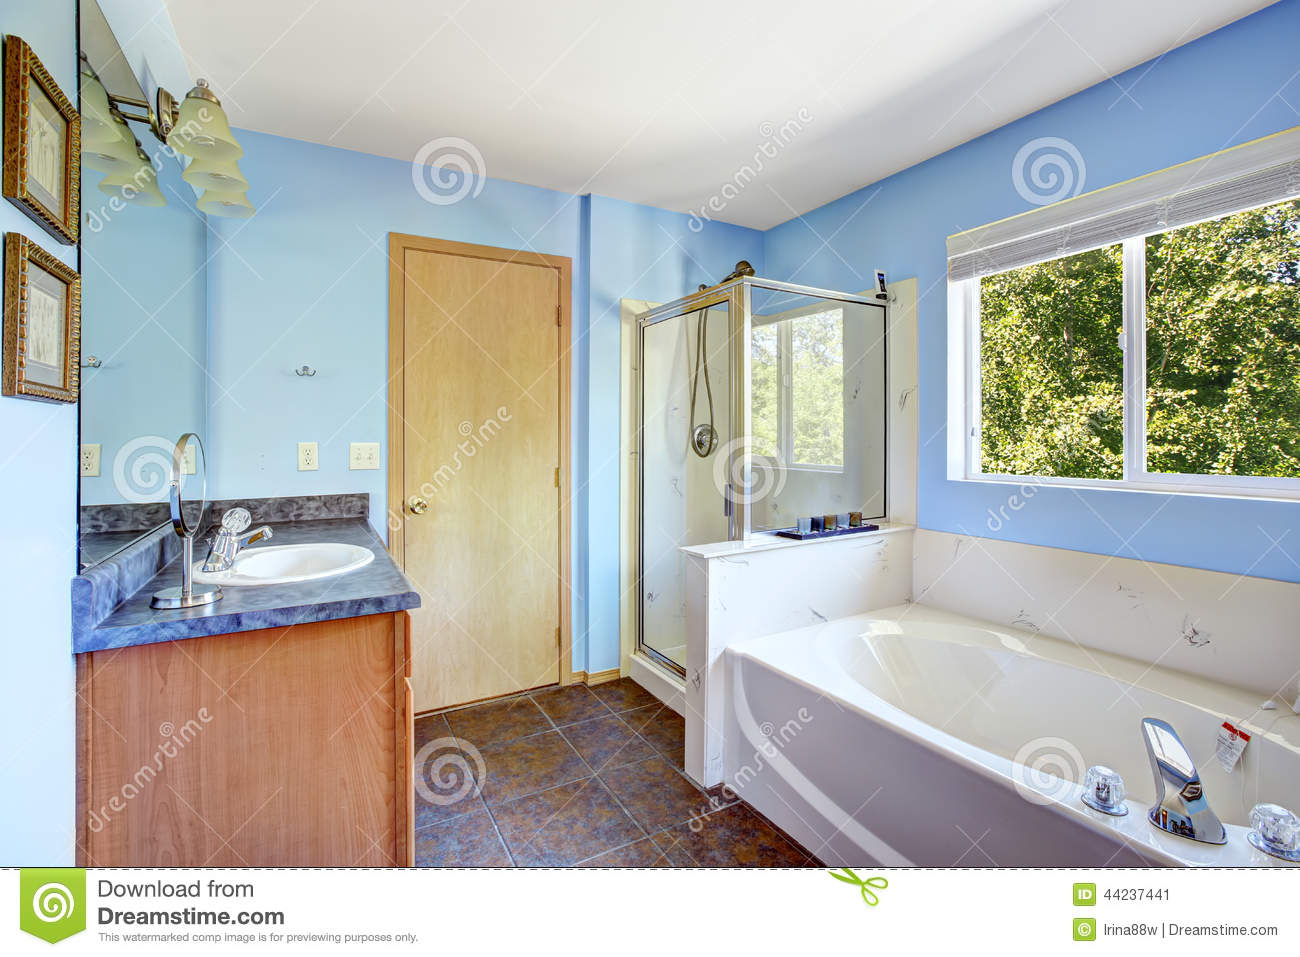 Very bright bathroom in light blue color Stock Image. Bright Bathroom Interior In Light Blue Color Stock Photo   Image